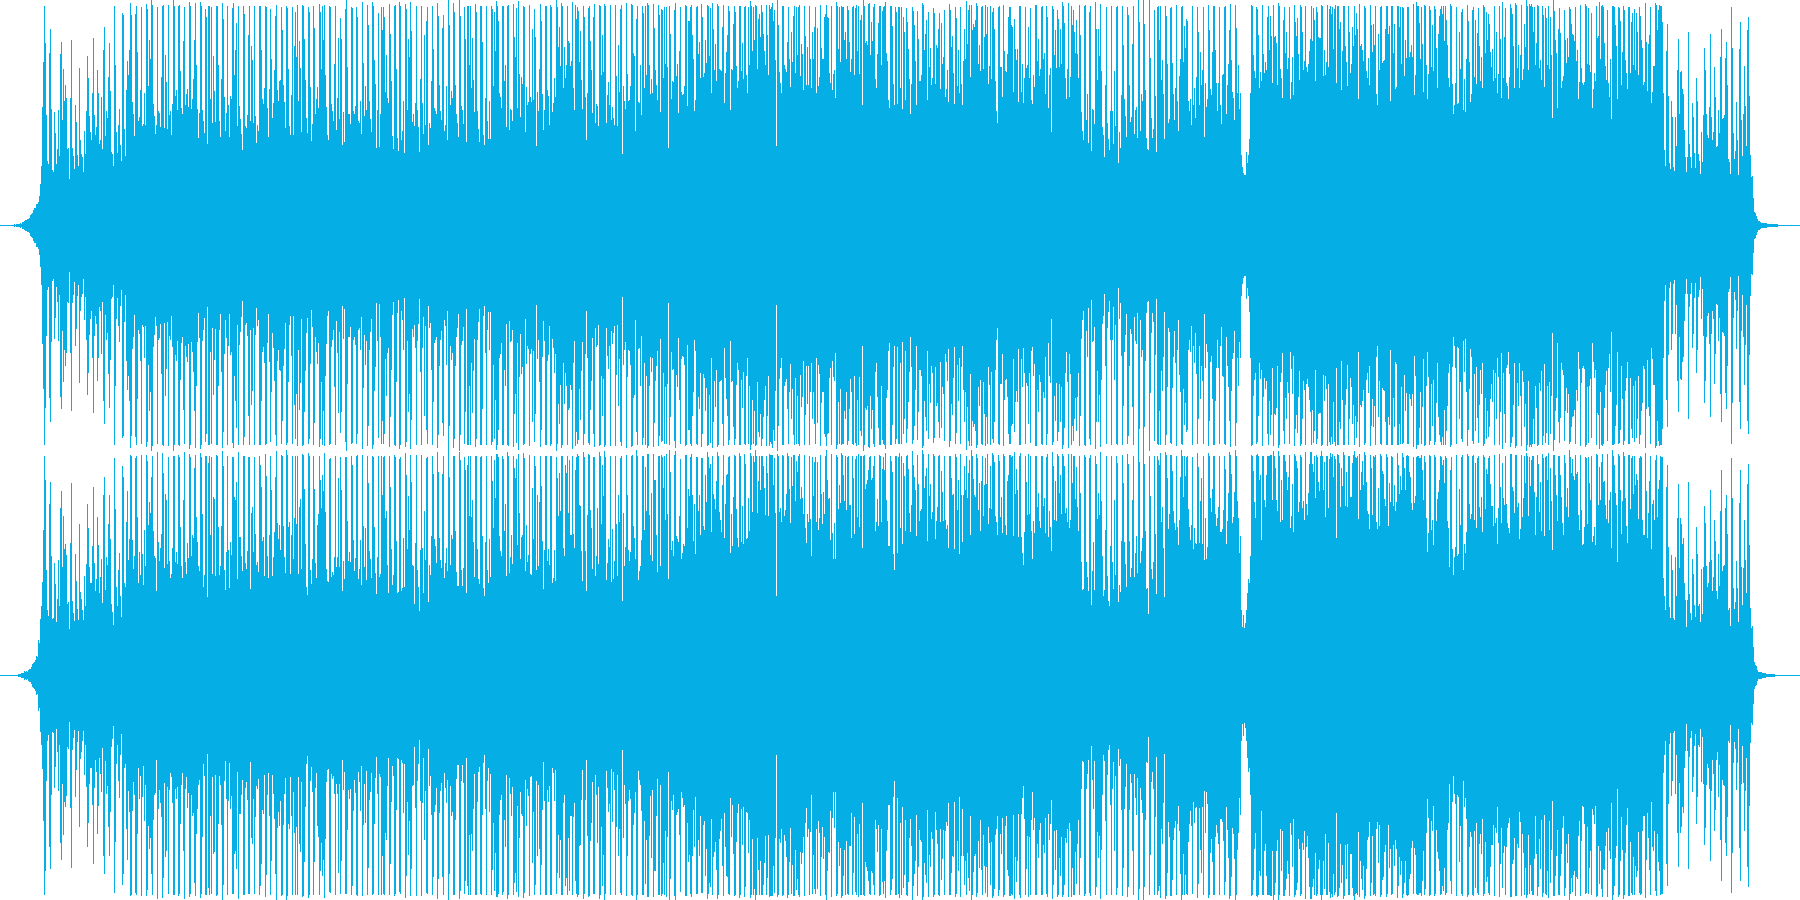 Hope/Bright/Rhythmic_A song with a good tempo's reproduced waveform